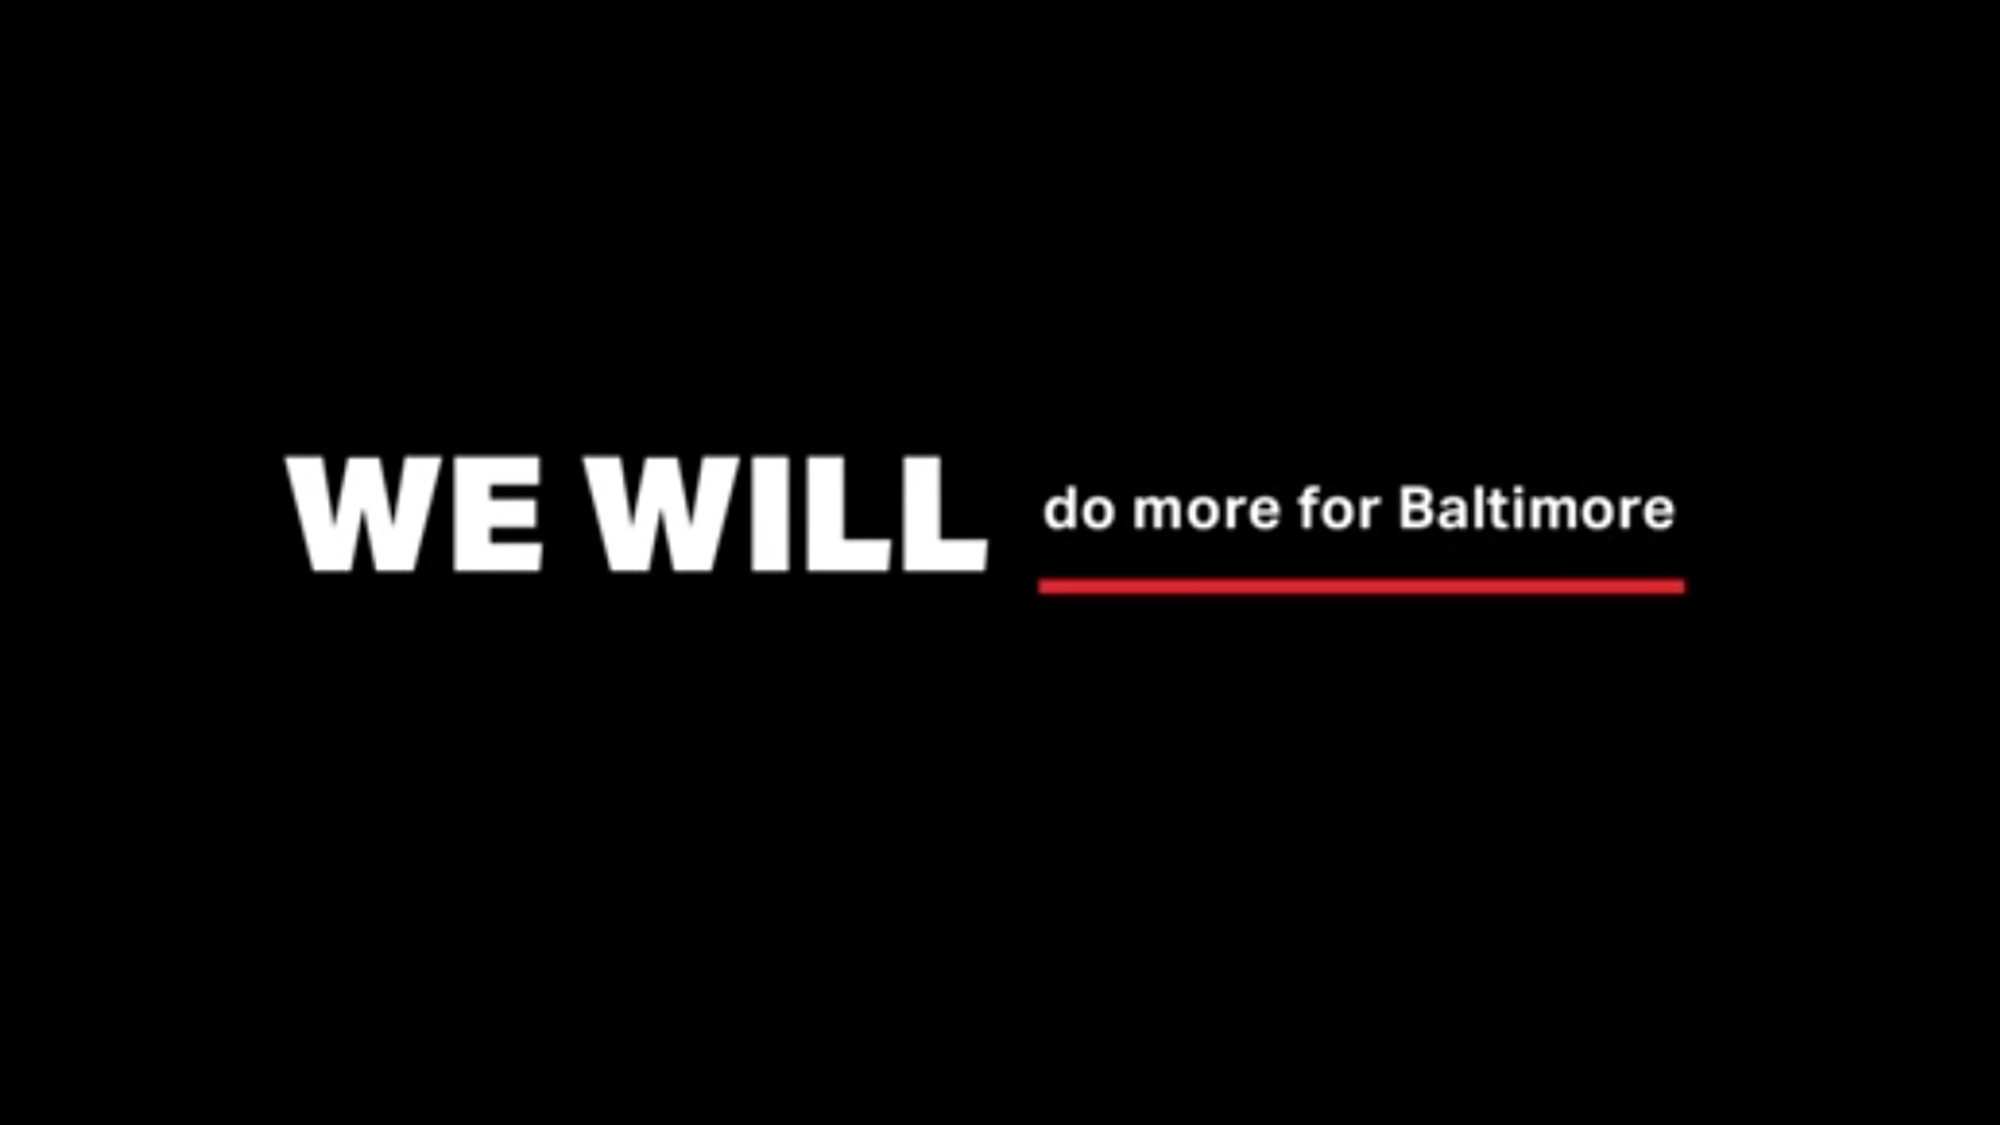 Under Armour launching new #WEWILL campaign aimed at aiding city - Baltimore Sun